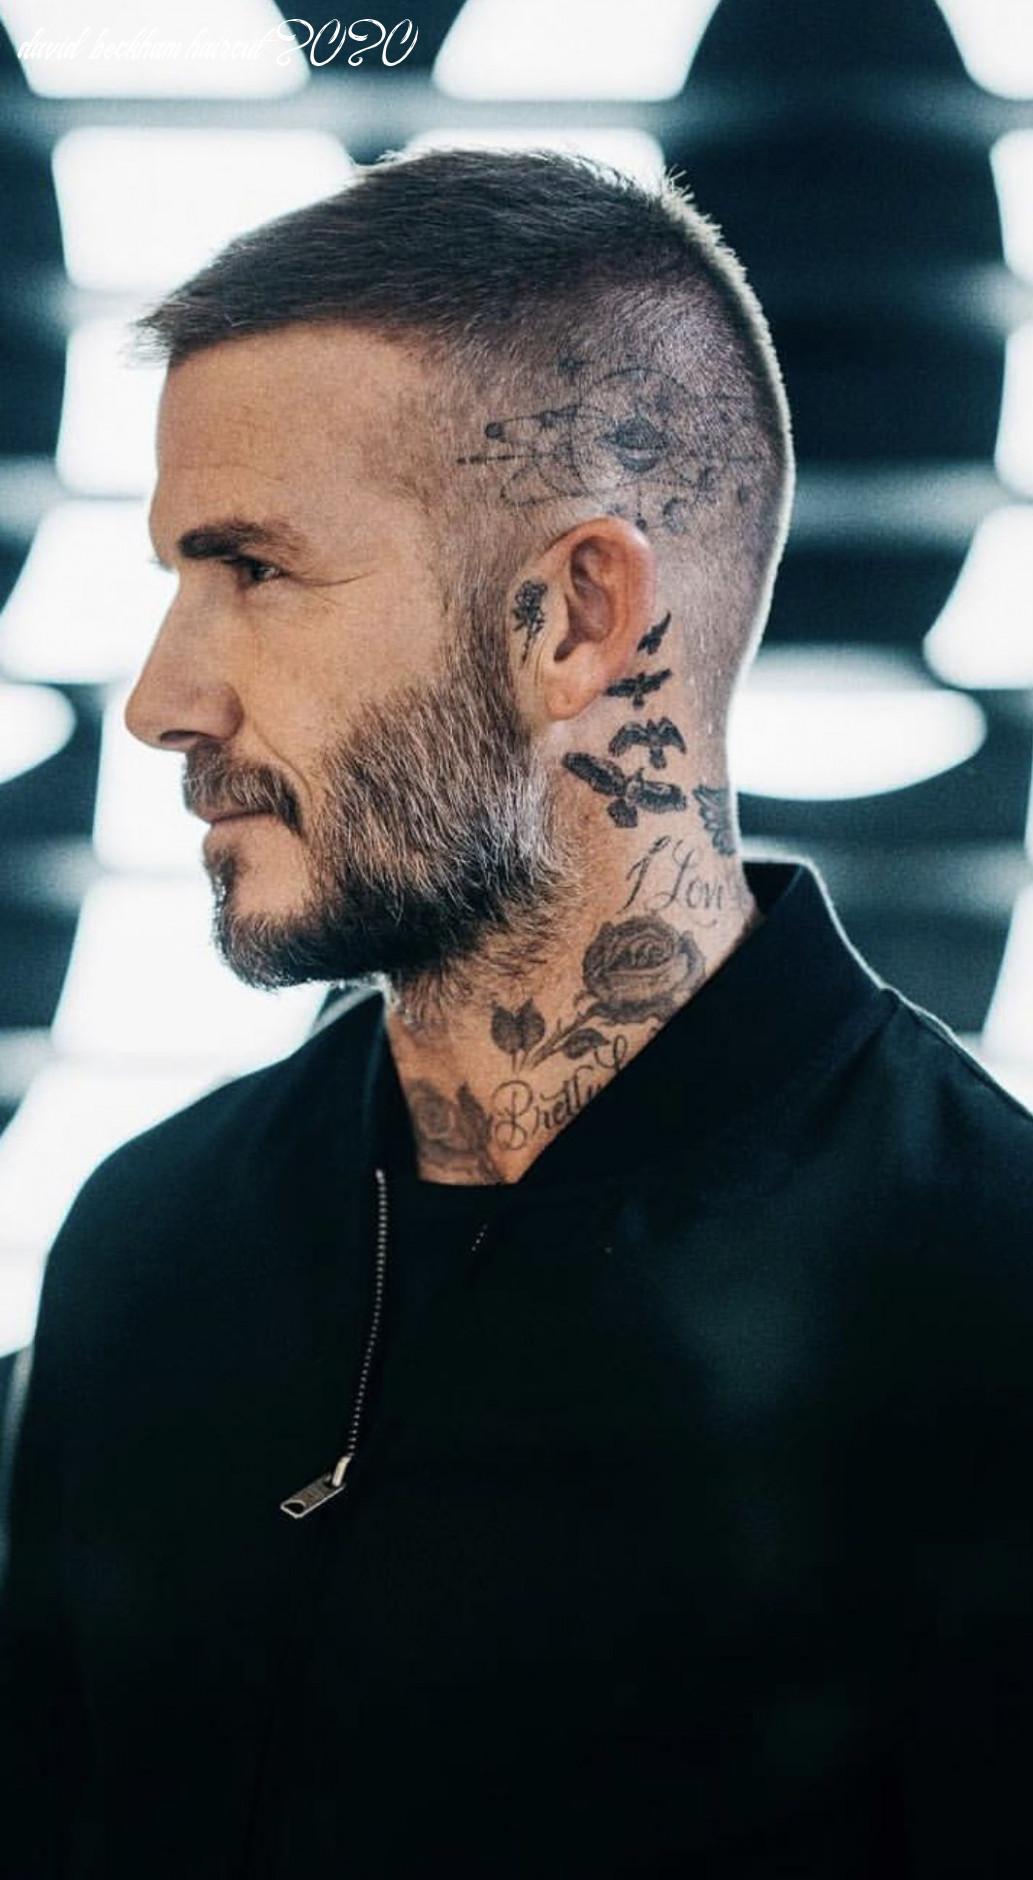 David beckham for house 11 #beardfashion in 11 (with images